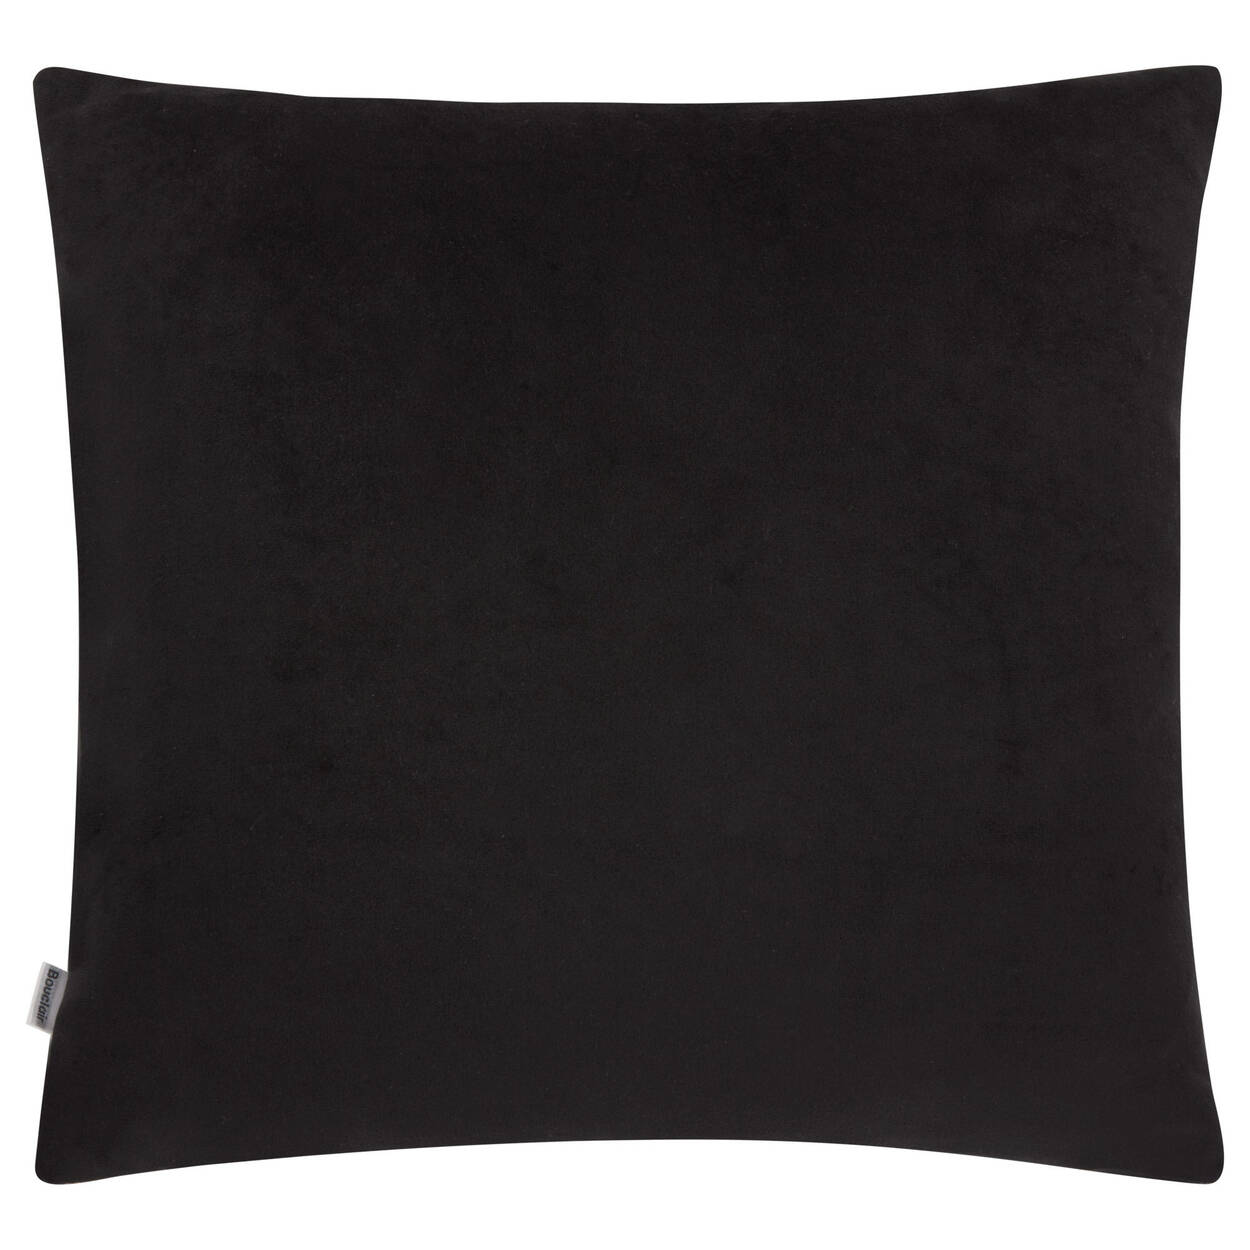 "Michael Decorative Pillow 18"" X 18"""